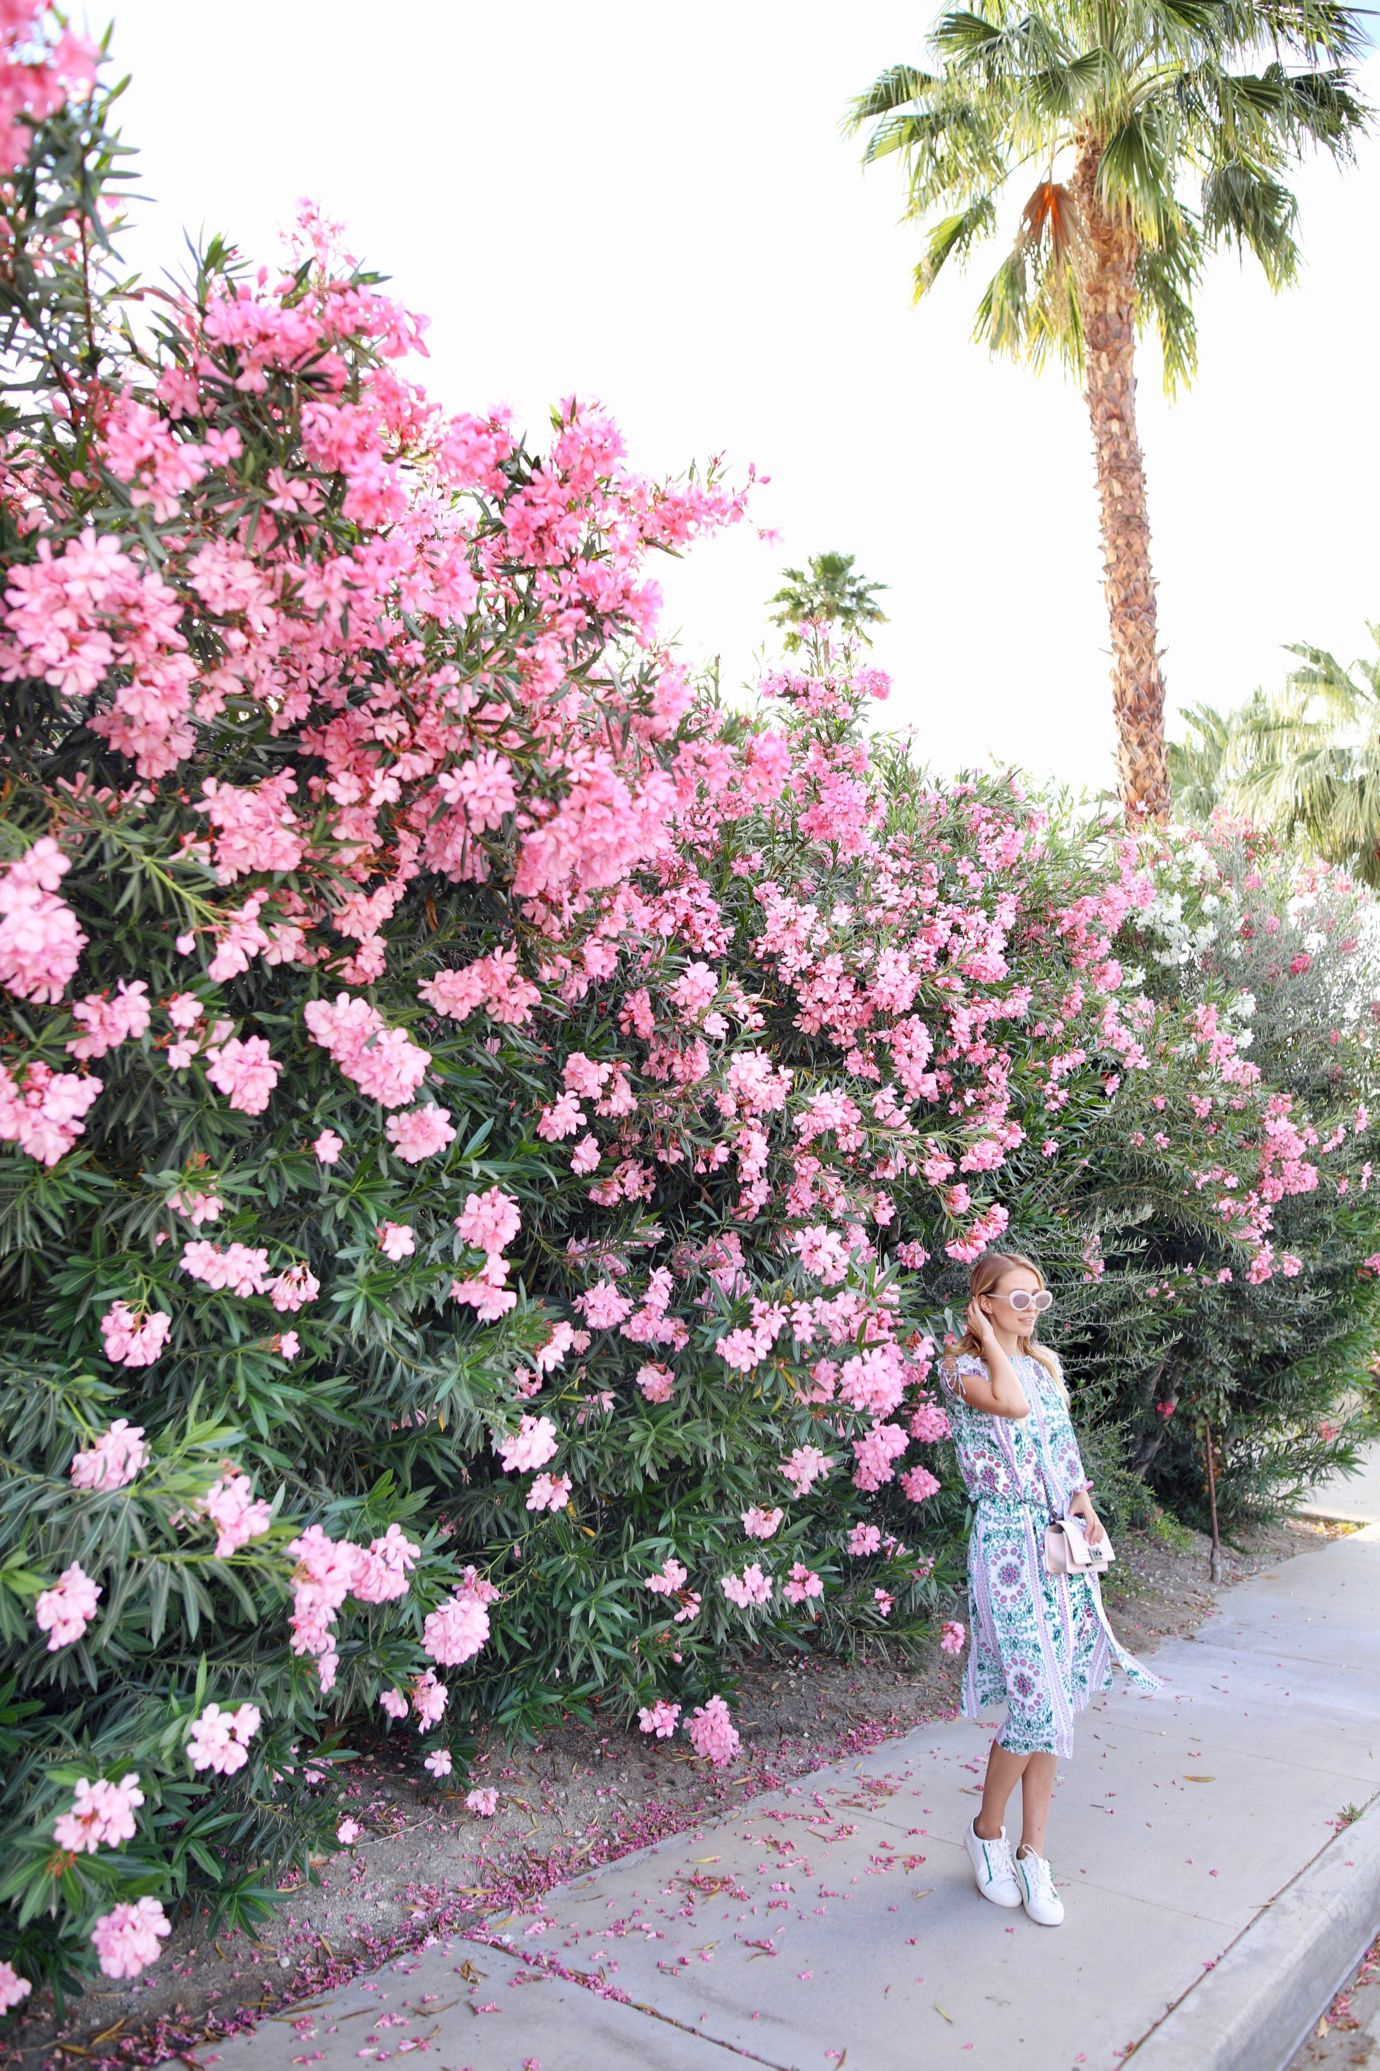 Palm Springs La 17 Pinterest Palm Springs Palm And Travel Bugs